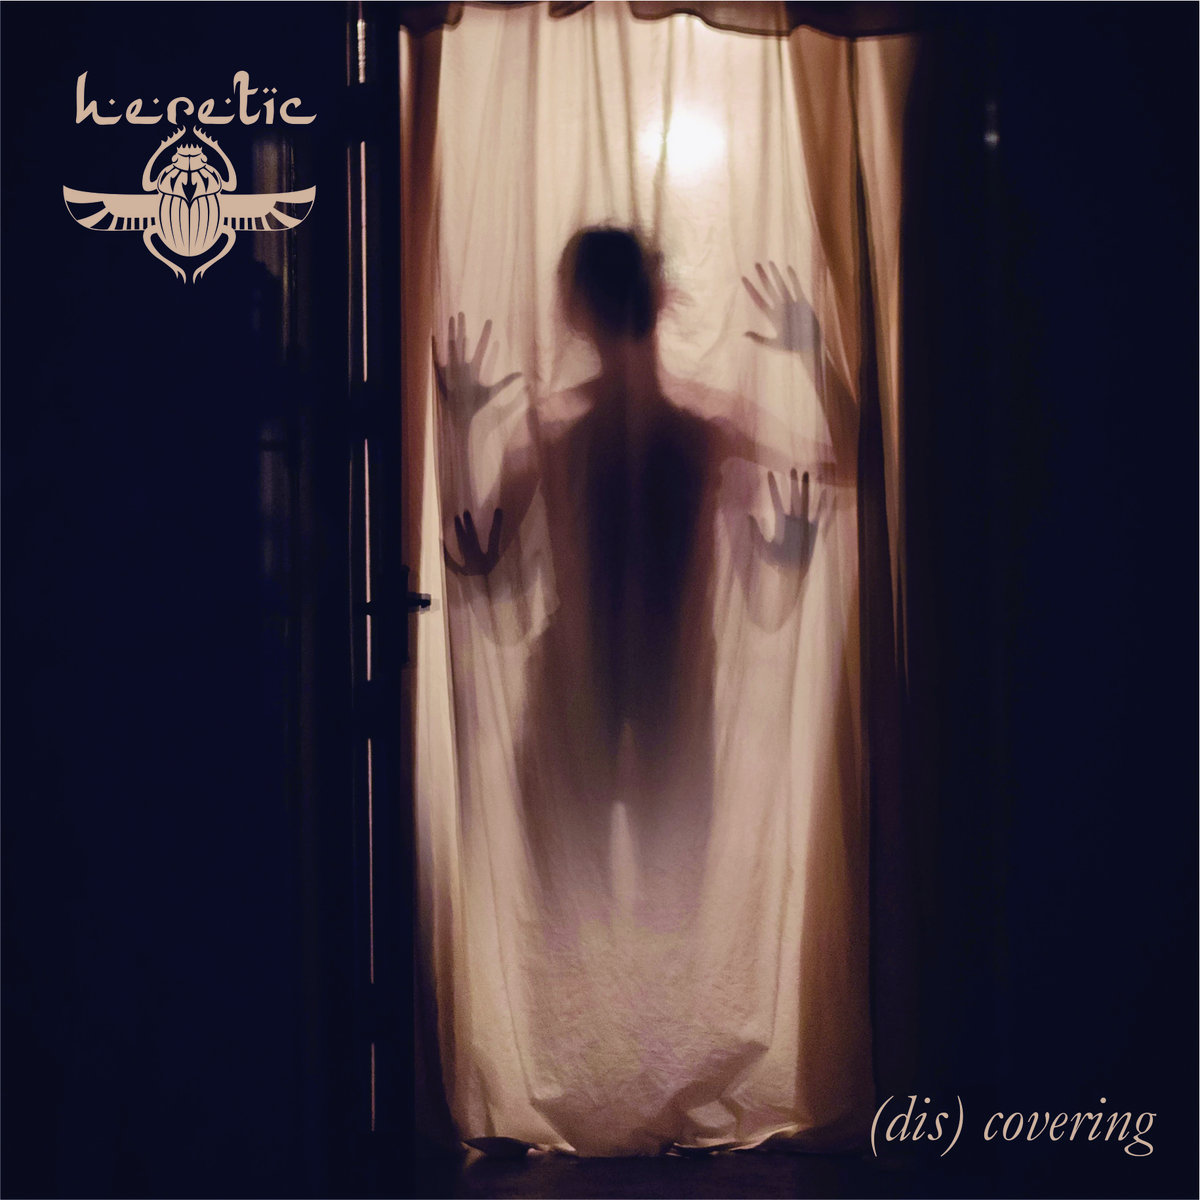 dis) covering | Heretic